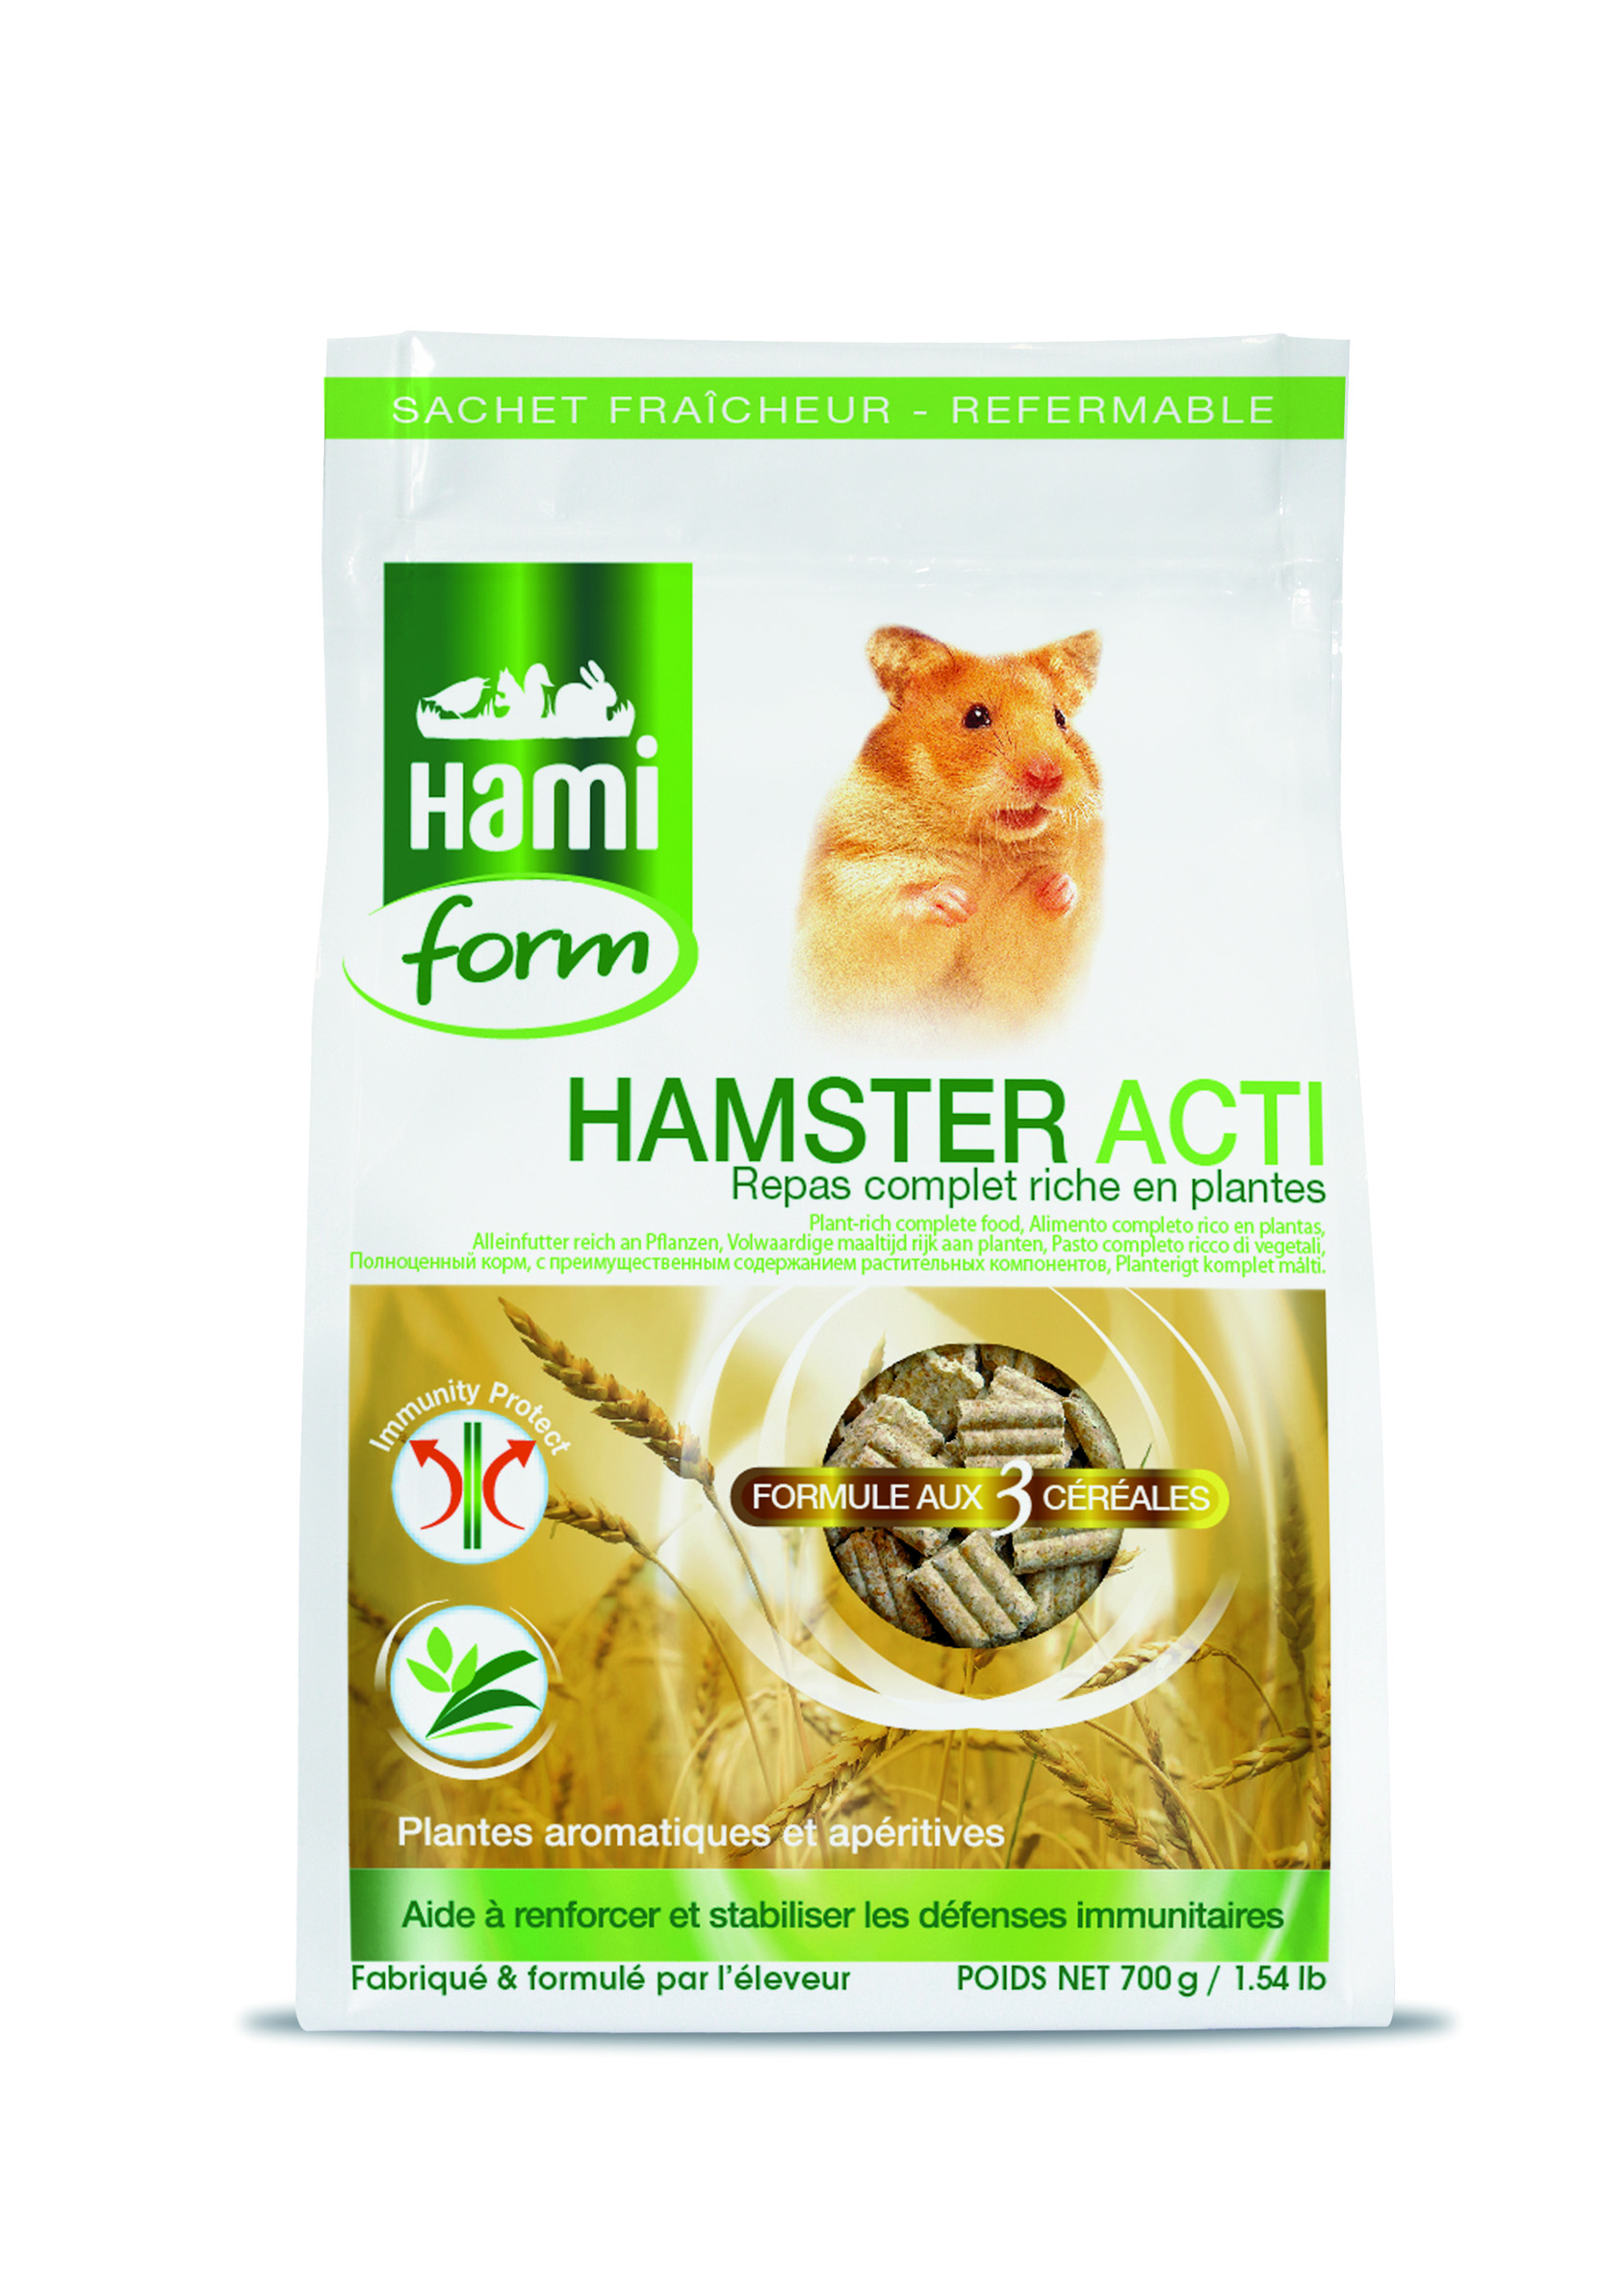 HF COMPLET HAMSTER ACTI 700g